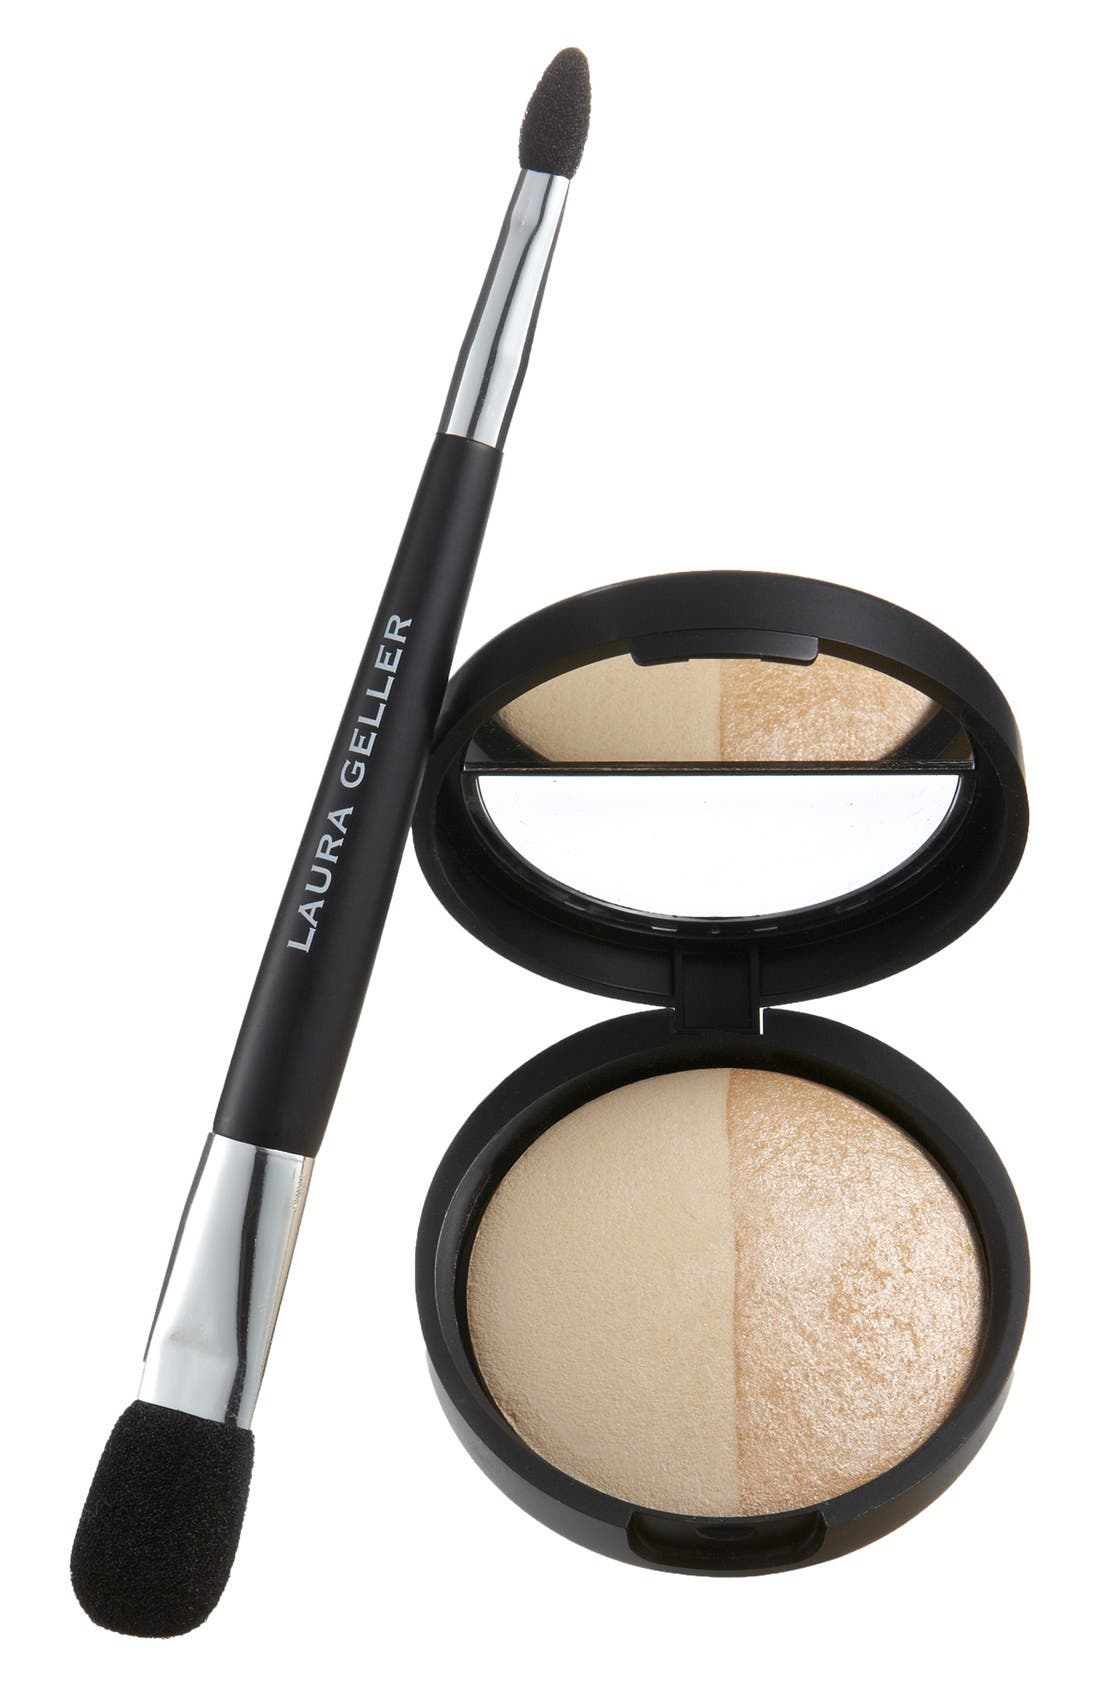 Baked Split Highlighter & Double-Ended Face & Eye Applicator,                         Main,                         color, 900